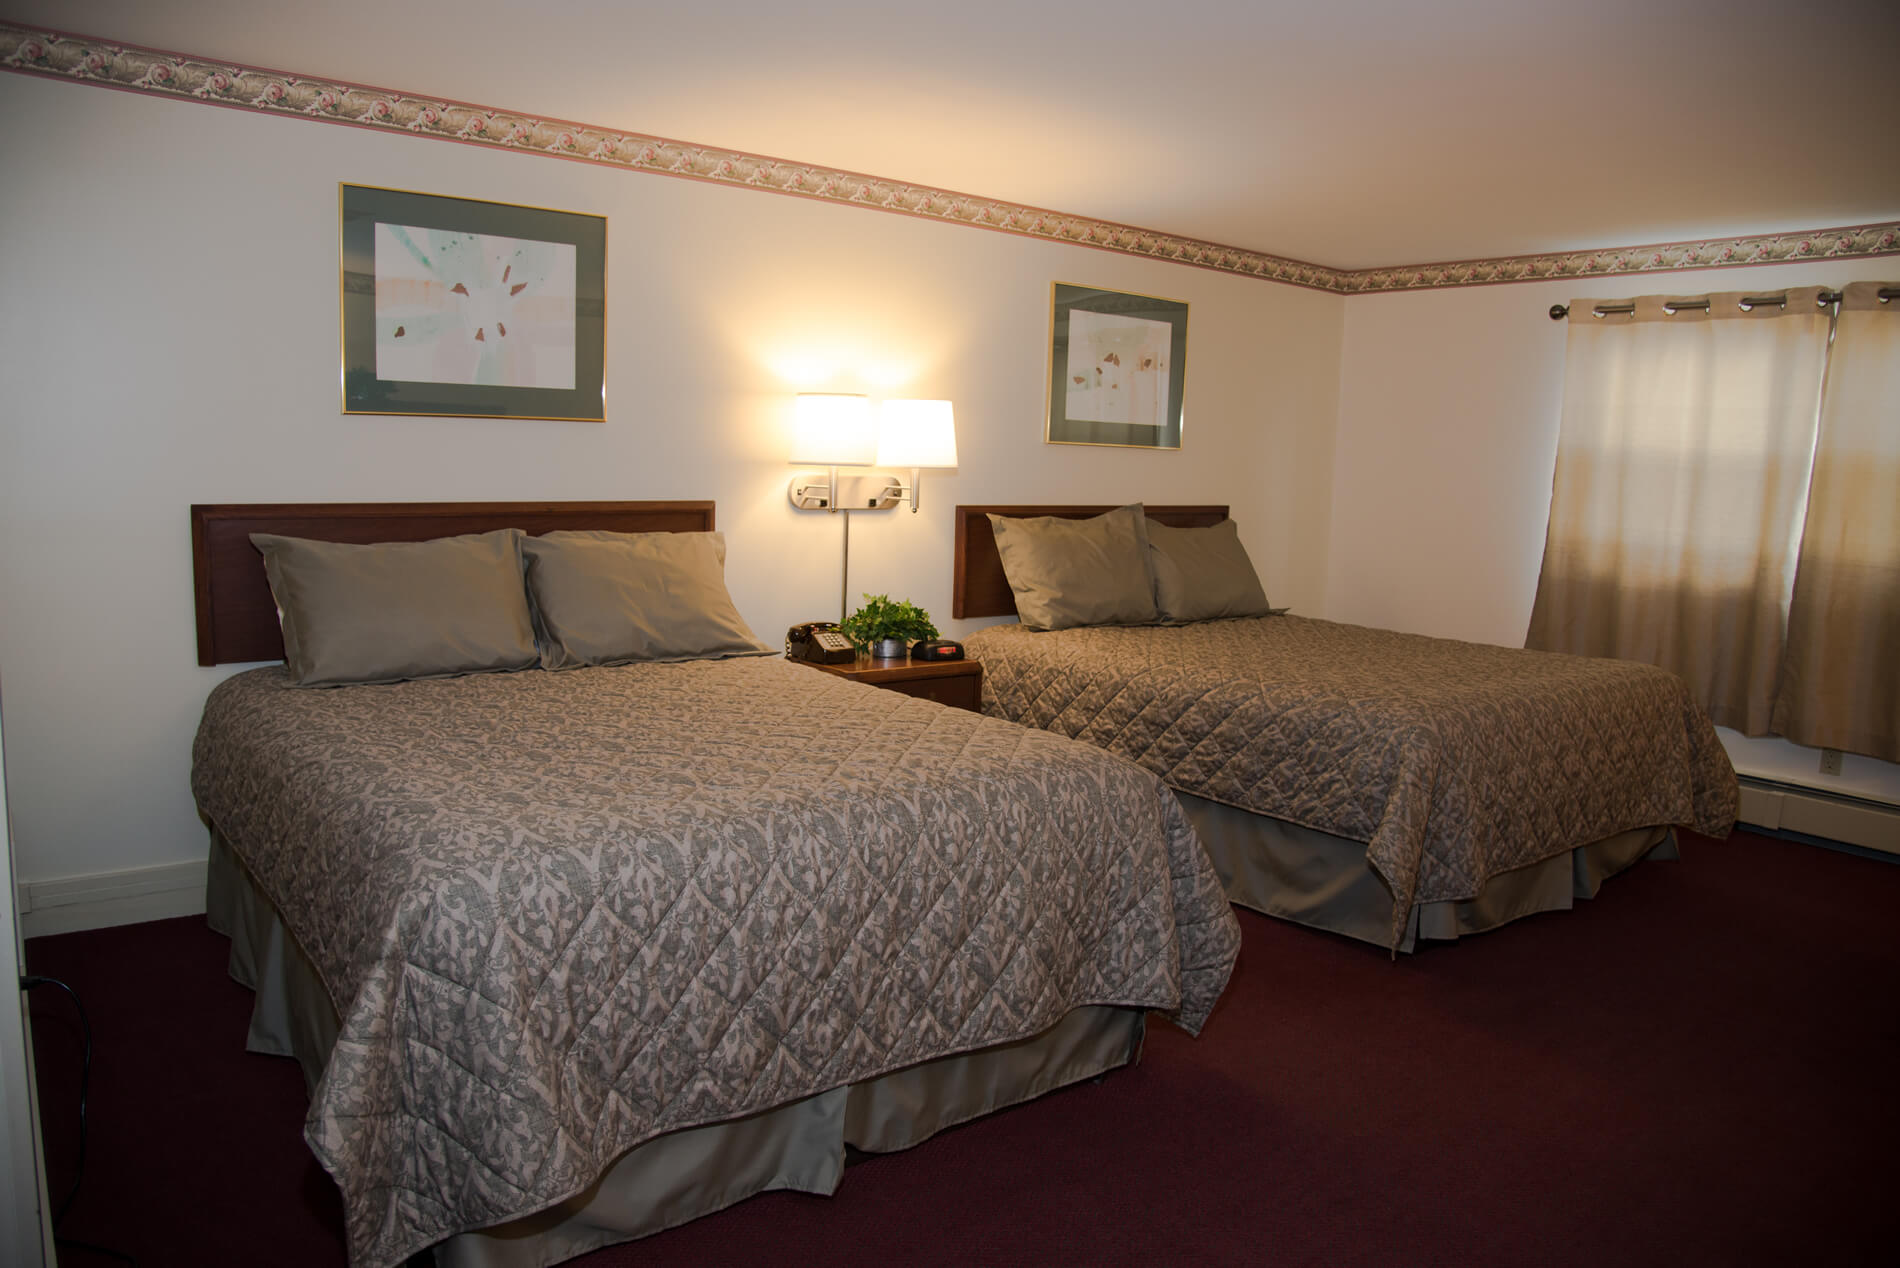 Large room in motel with two Queen size beds and cream colored curtains.